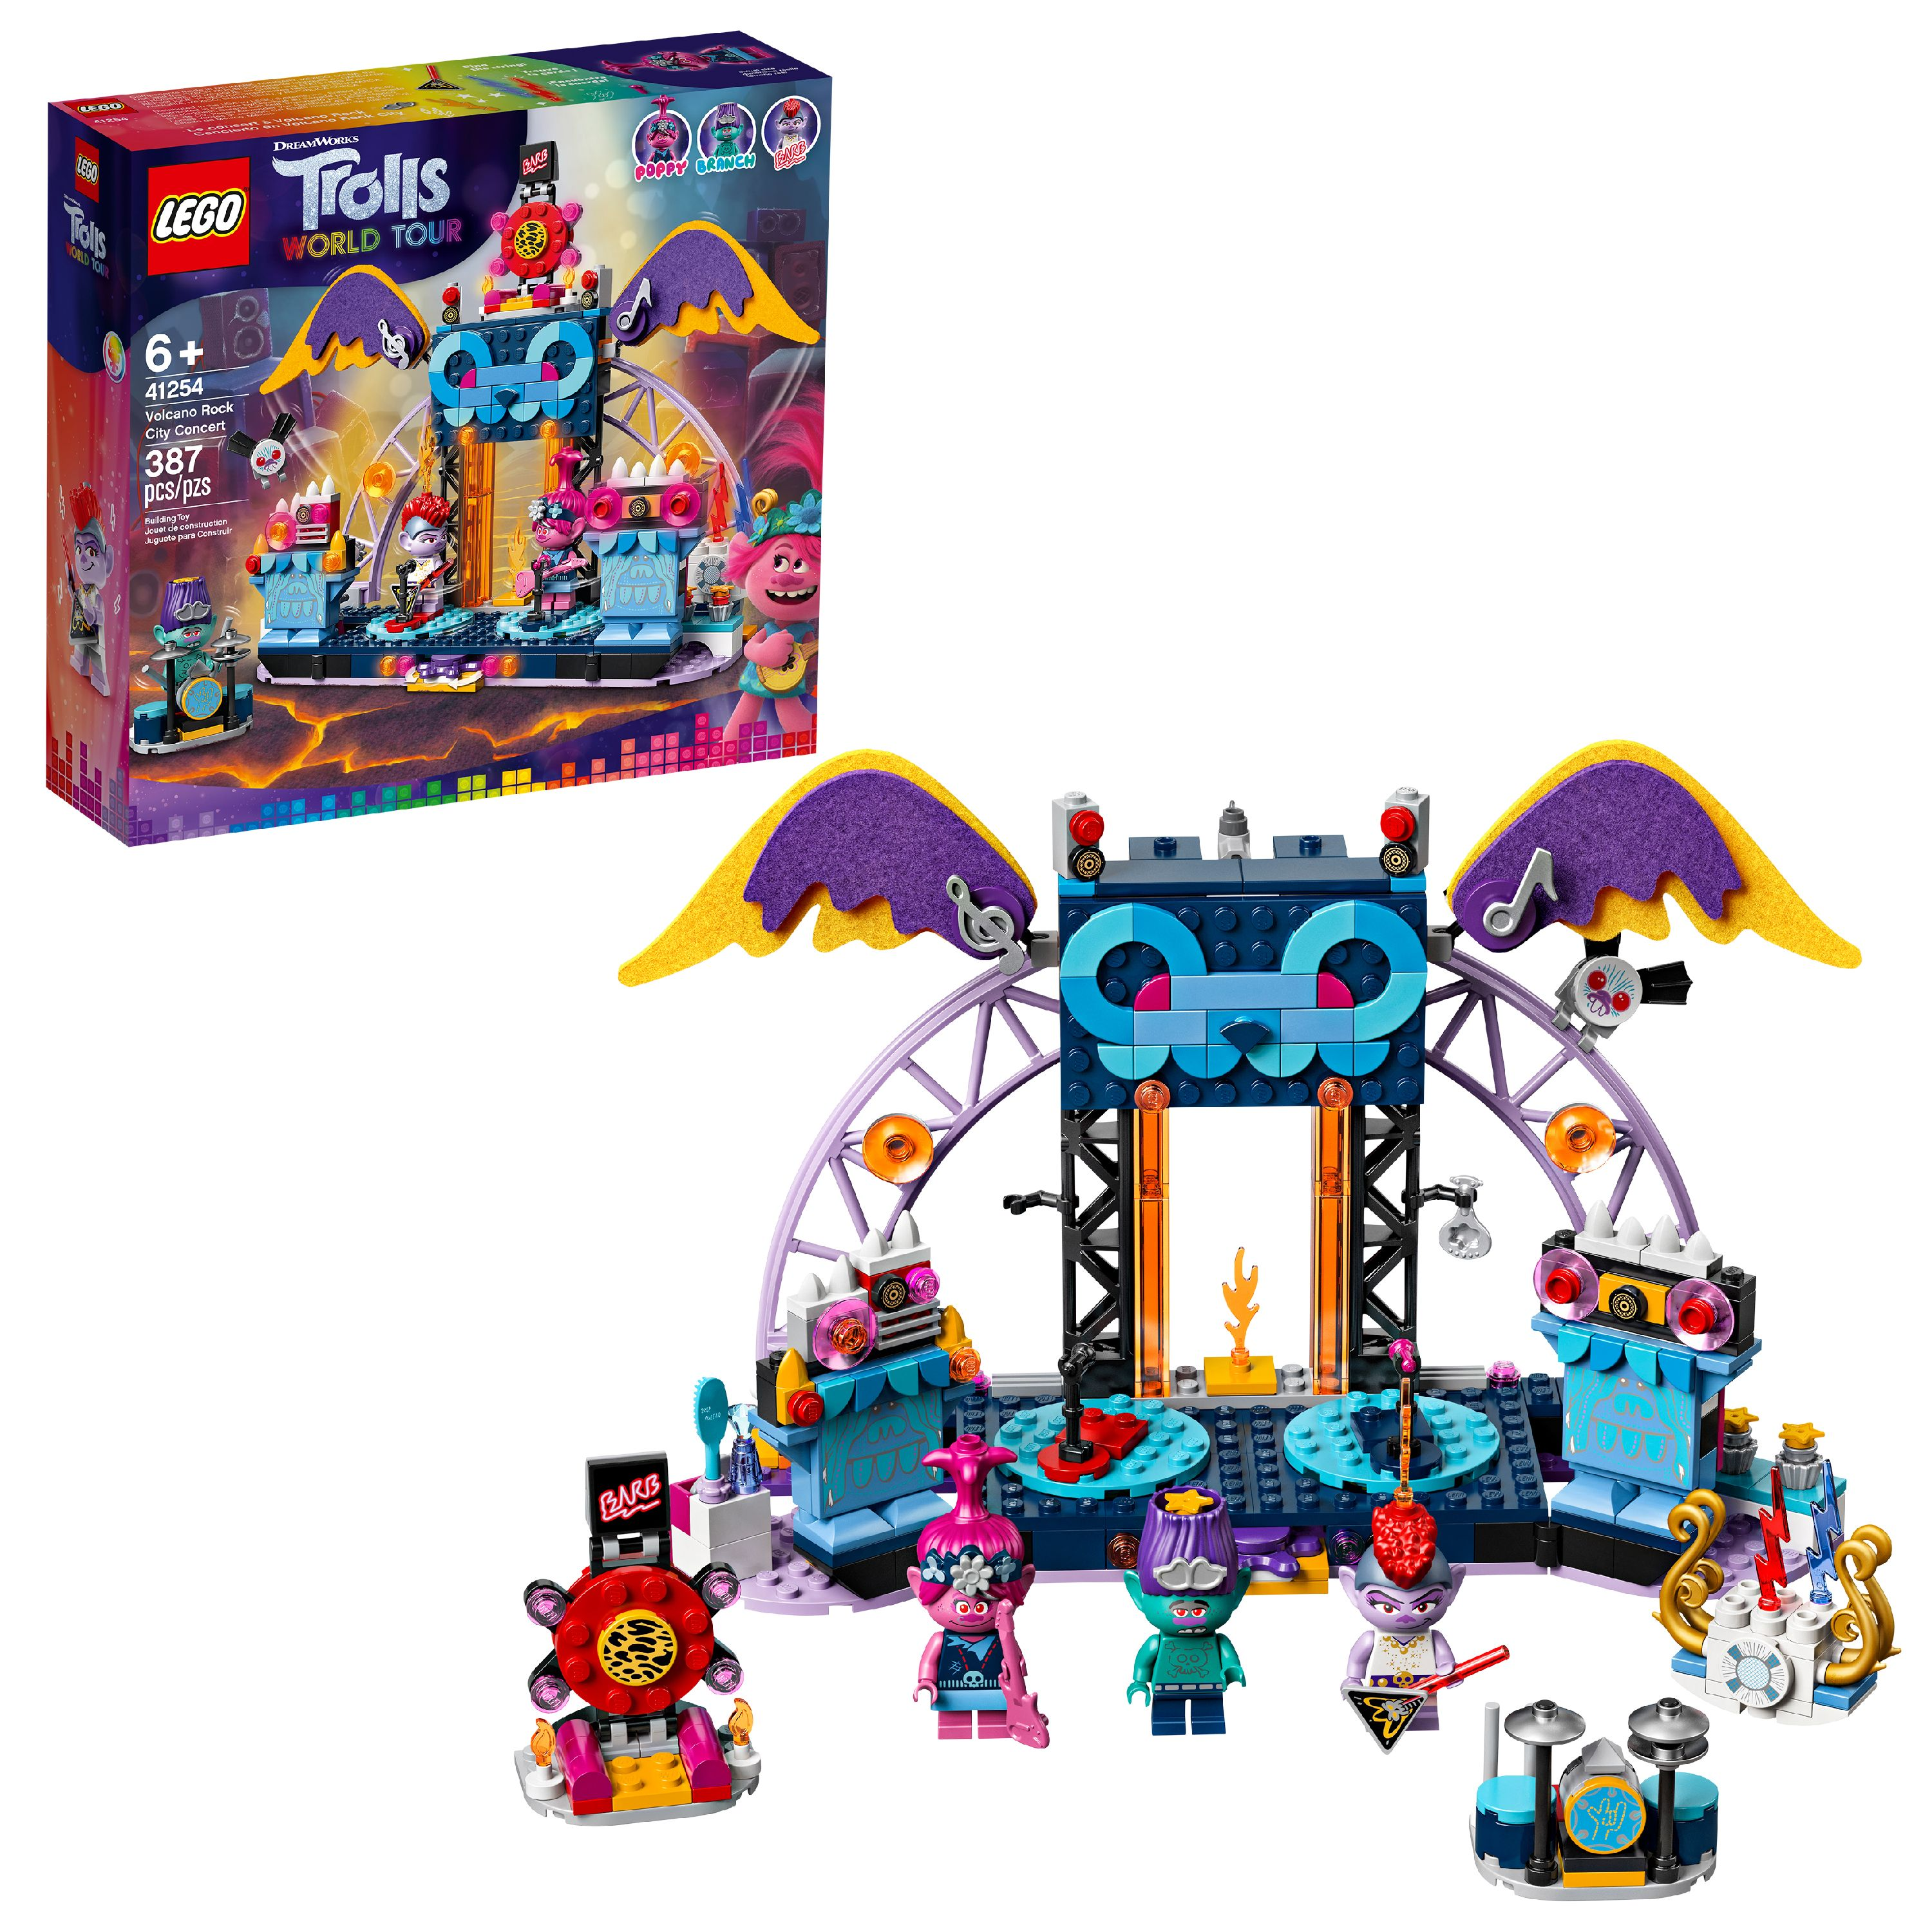 LEGO Trolls World Tour Volcano Rock City Concert Building Kit 41254